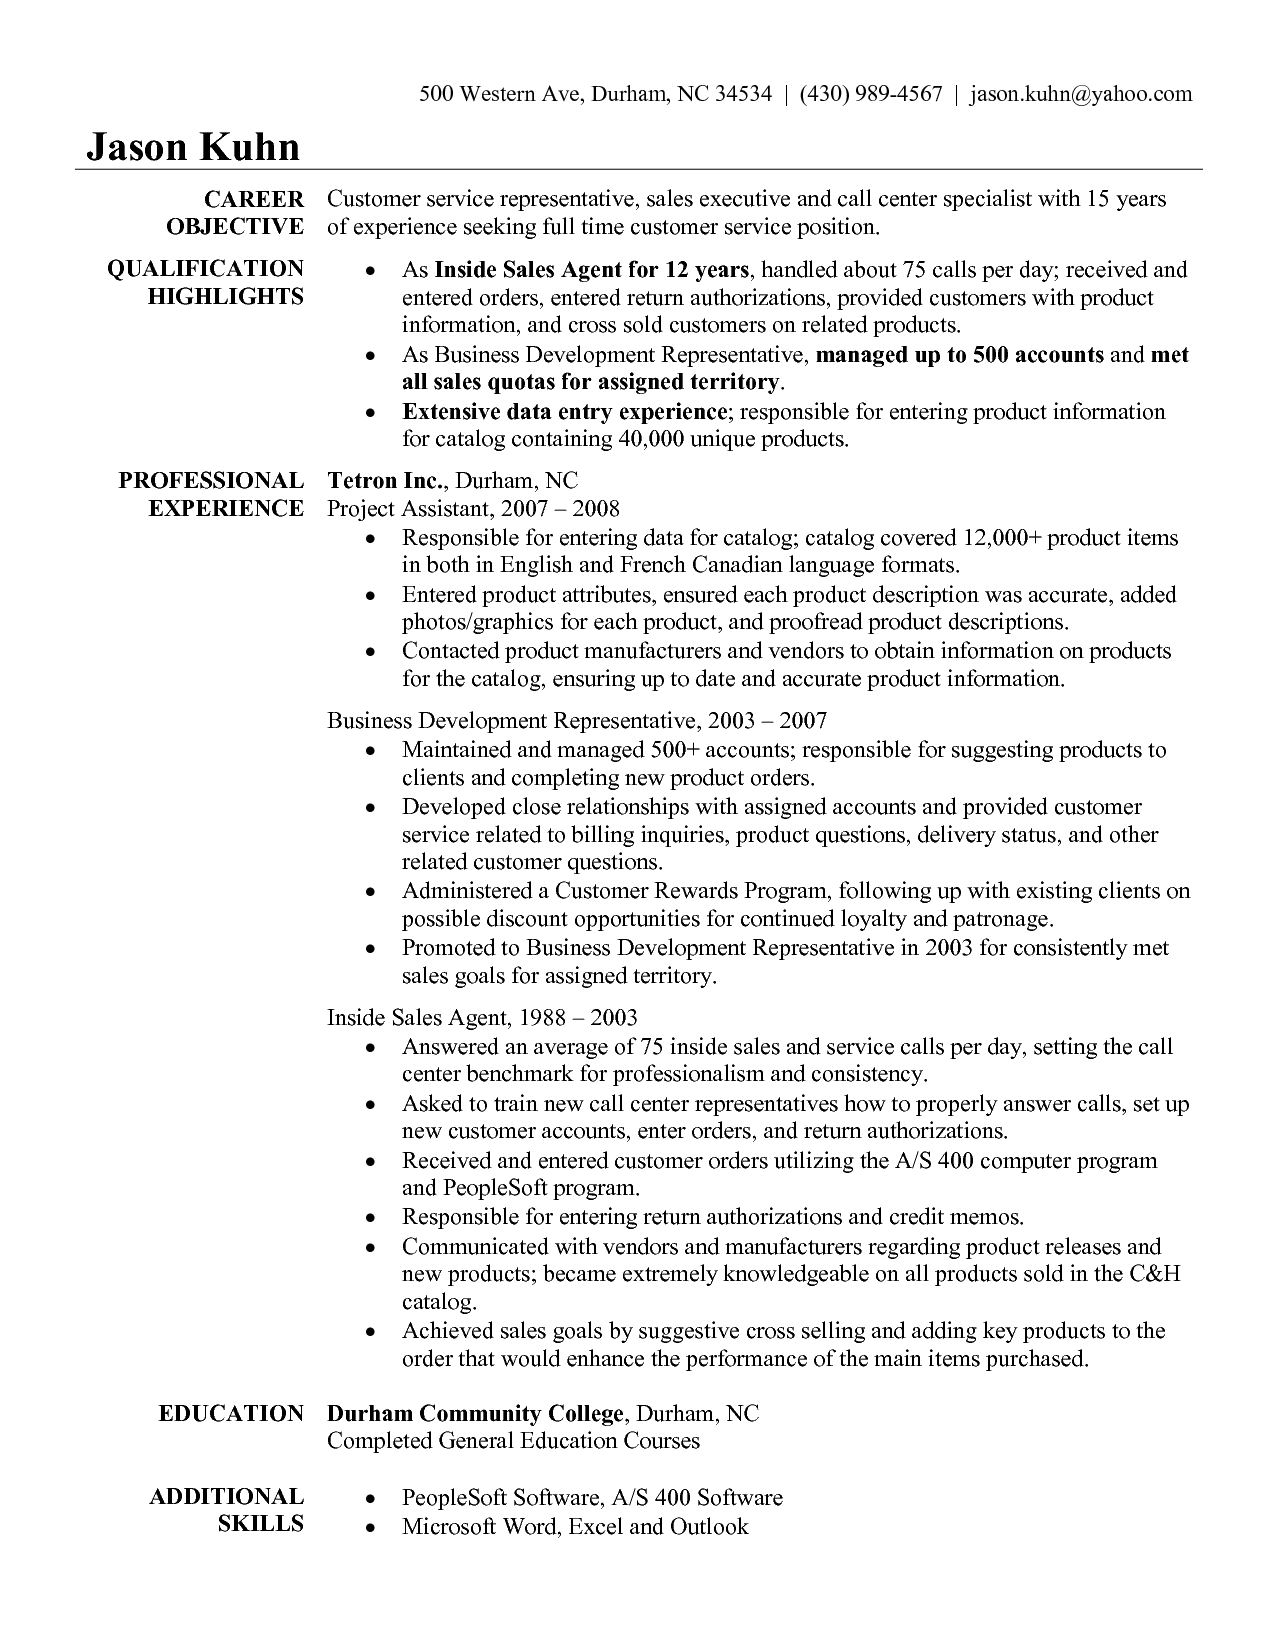 Insurance Claims Representative Resume Sample - http://www ...